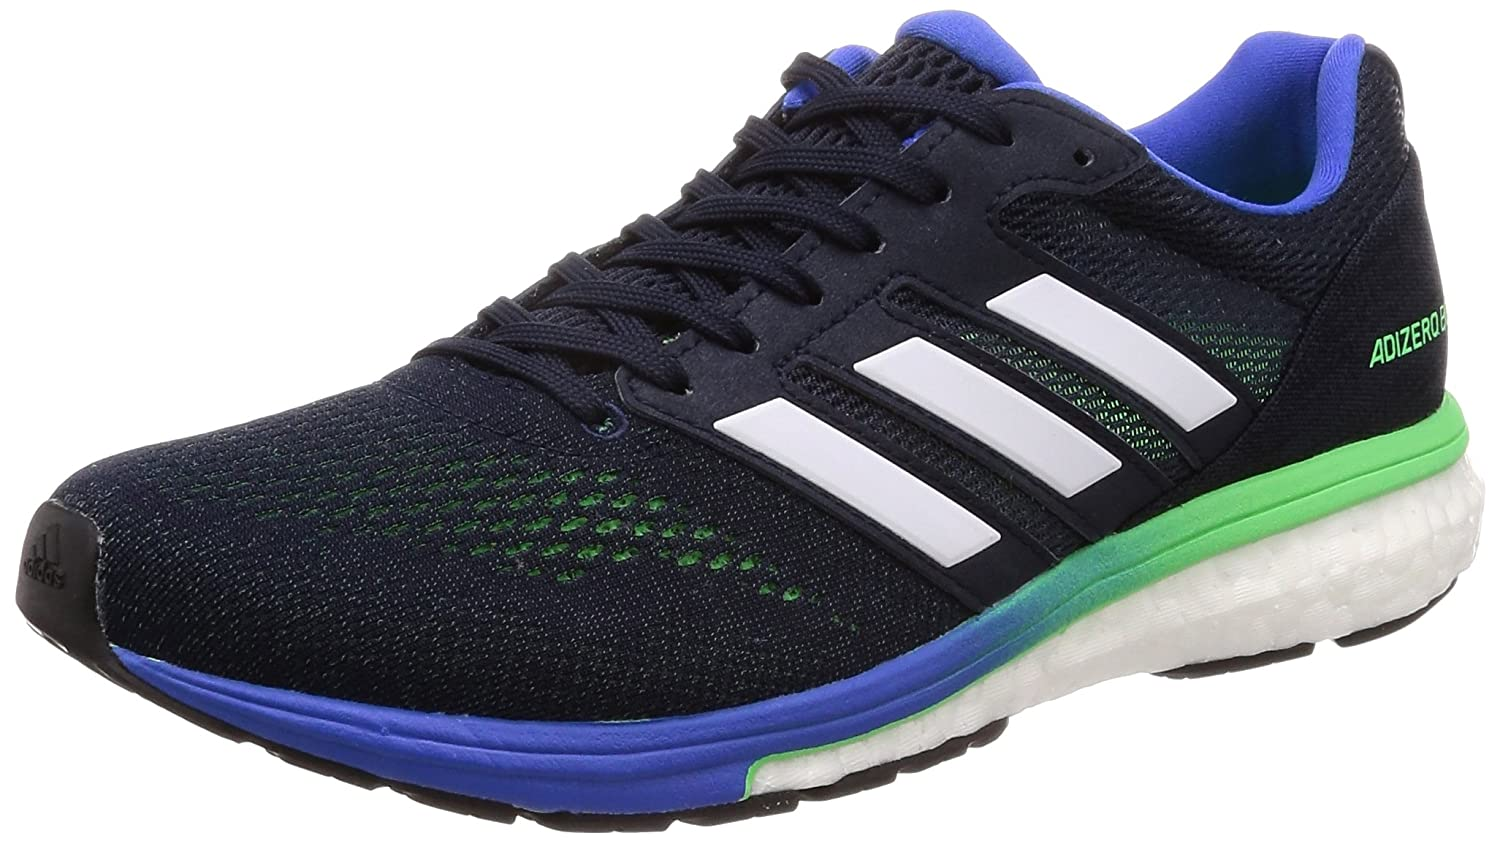 new concept 0ea41 31a38 adidas Adizero Boston 7 M, Zapatillas de Running para Hombre  Amazon.es   Zapatos y complementos